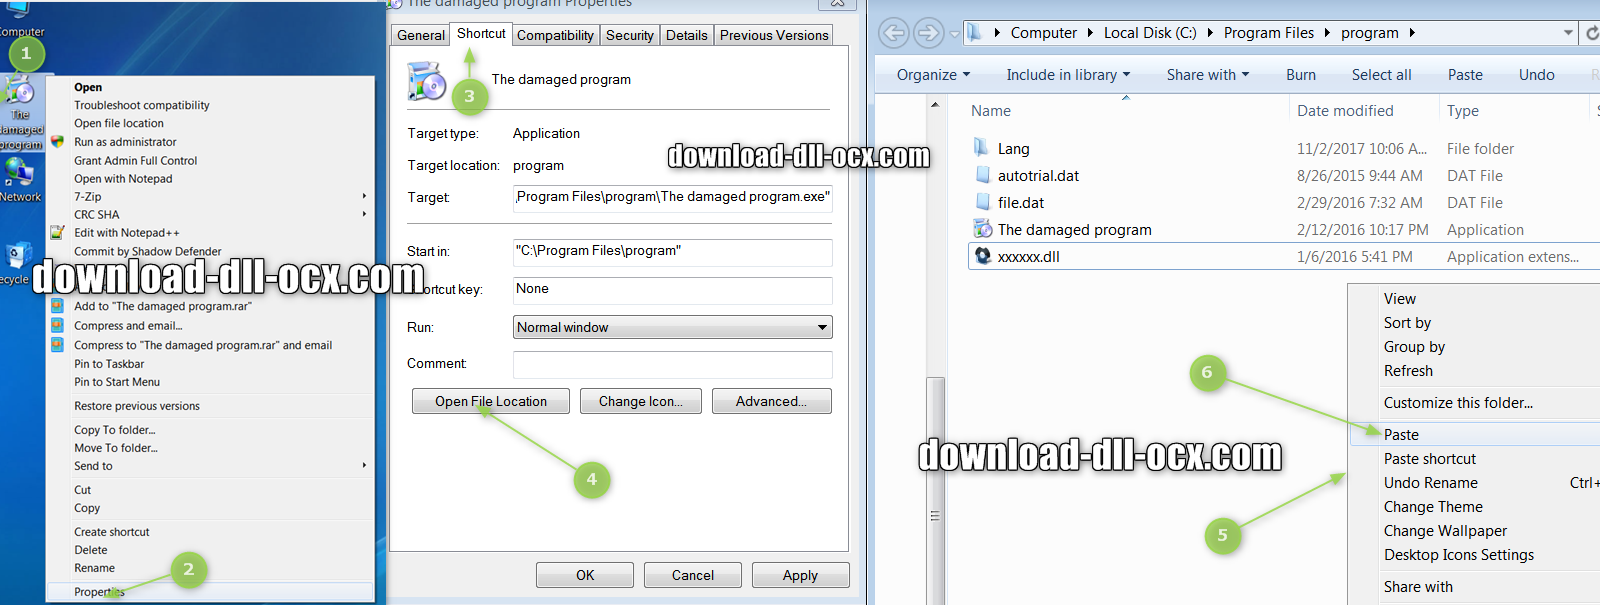 how to install SEMMAP.dll file? for fix missing